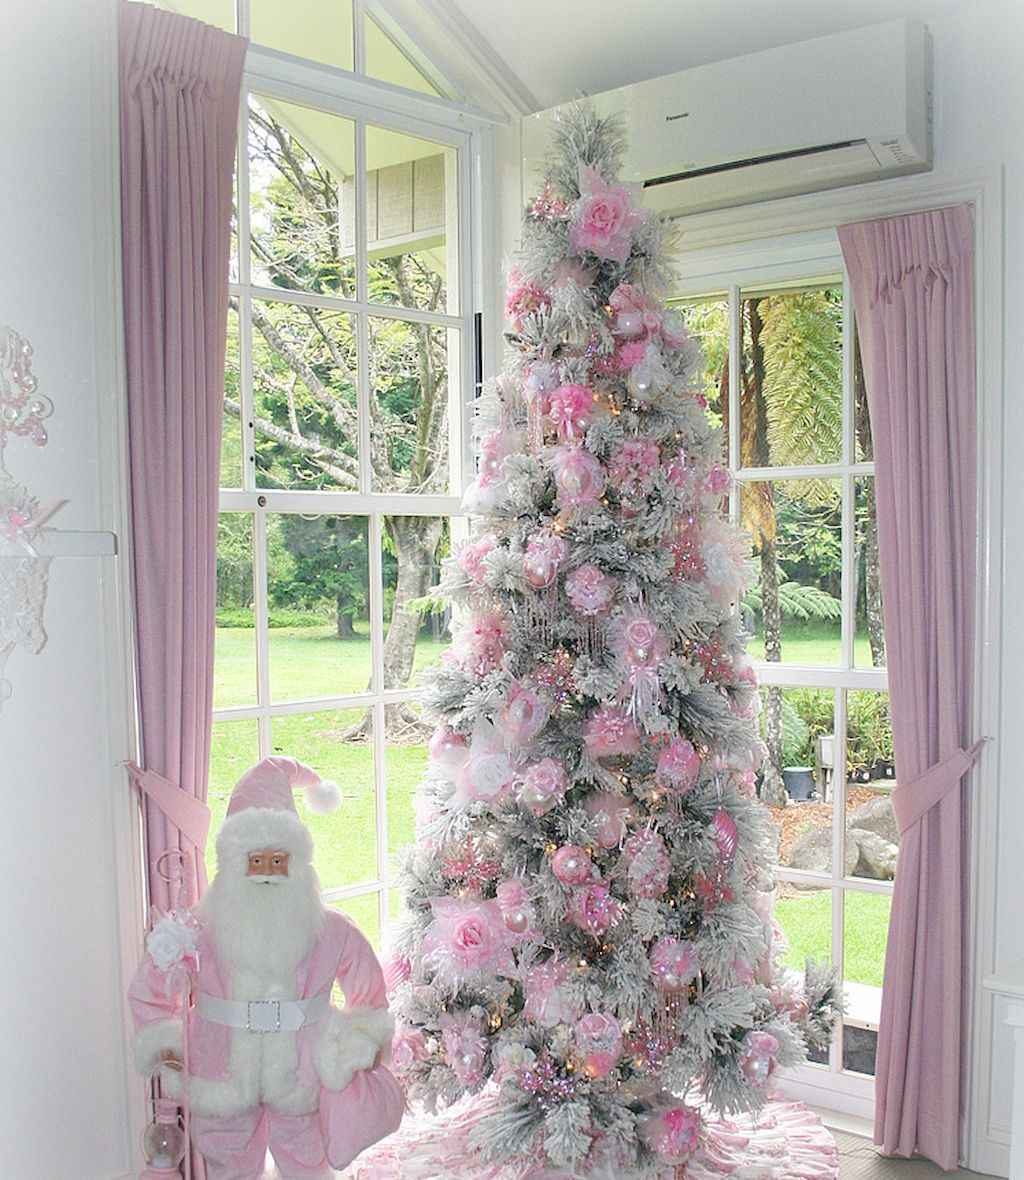 40 First Apartment Ideas Christmas Decorations Shabby Chic (19)